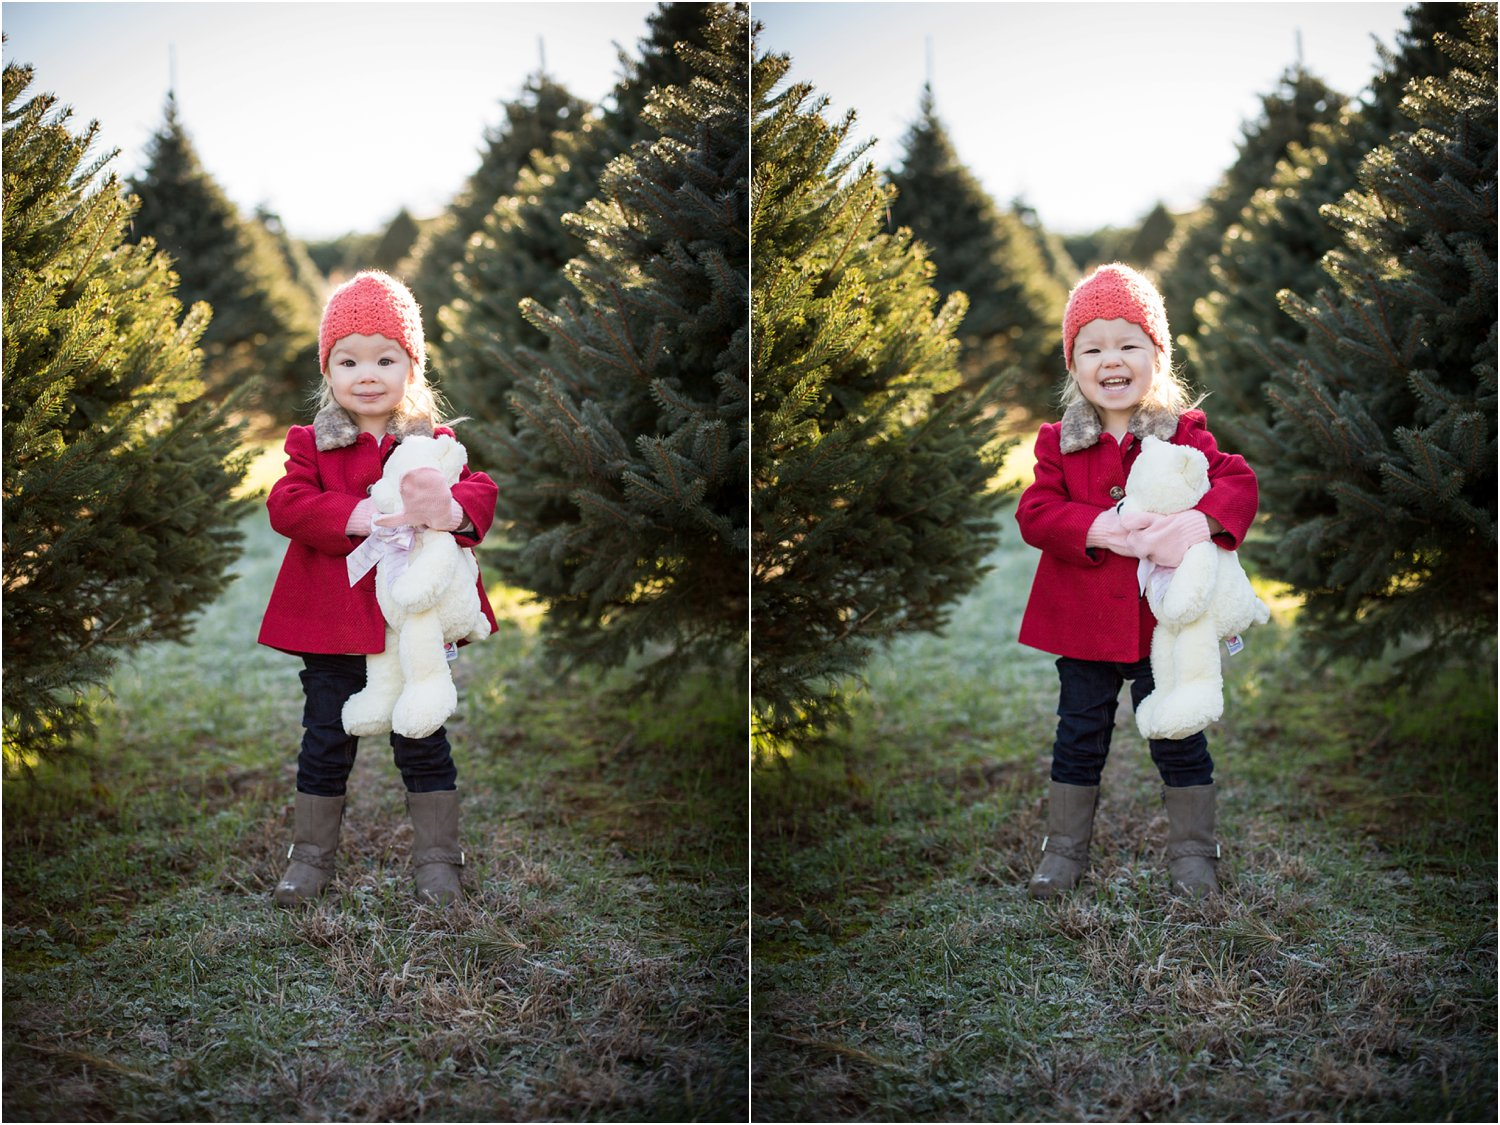 Moose_Apple_Chrismas_Tree_Farm_Family_Portraits_0004.jpg